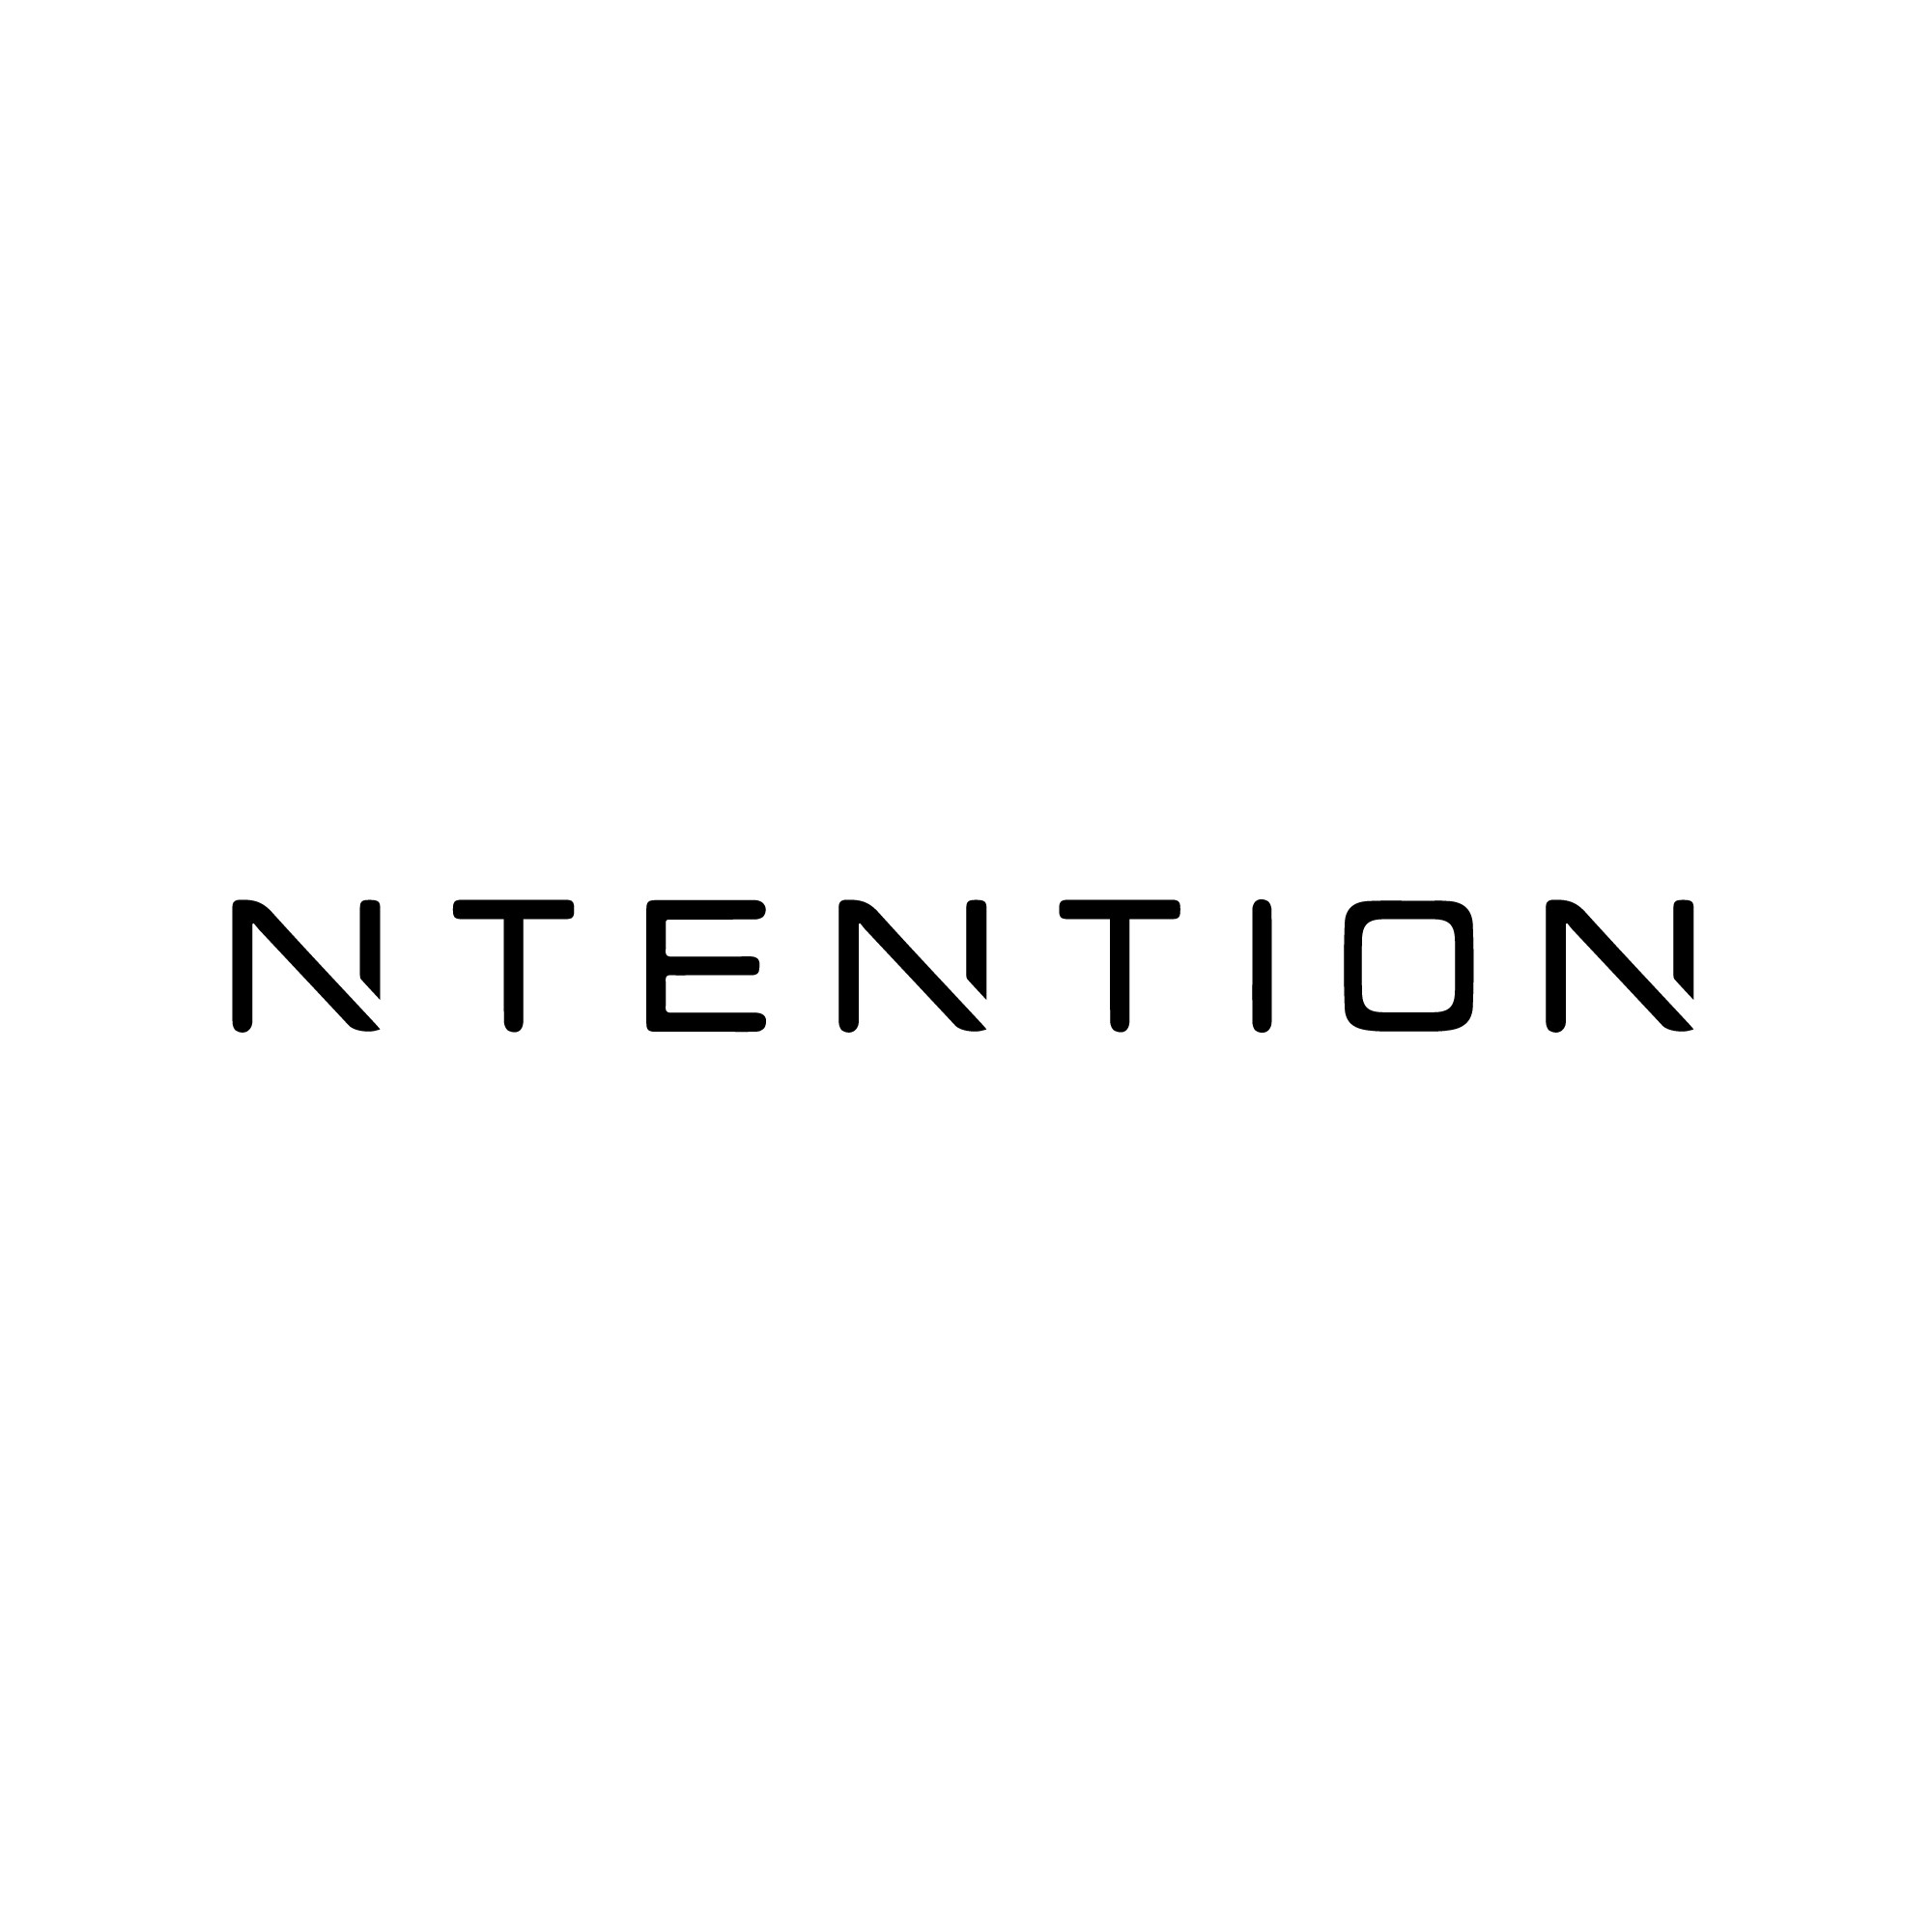 Ntention logo